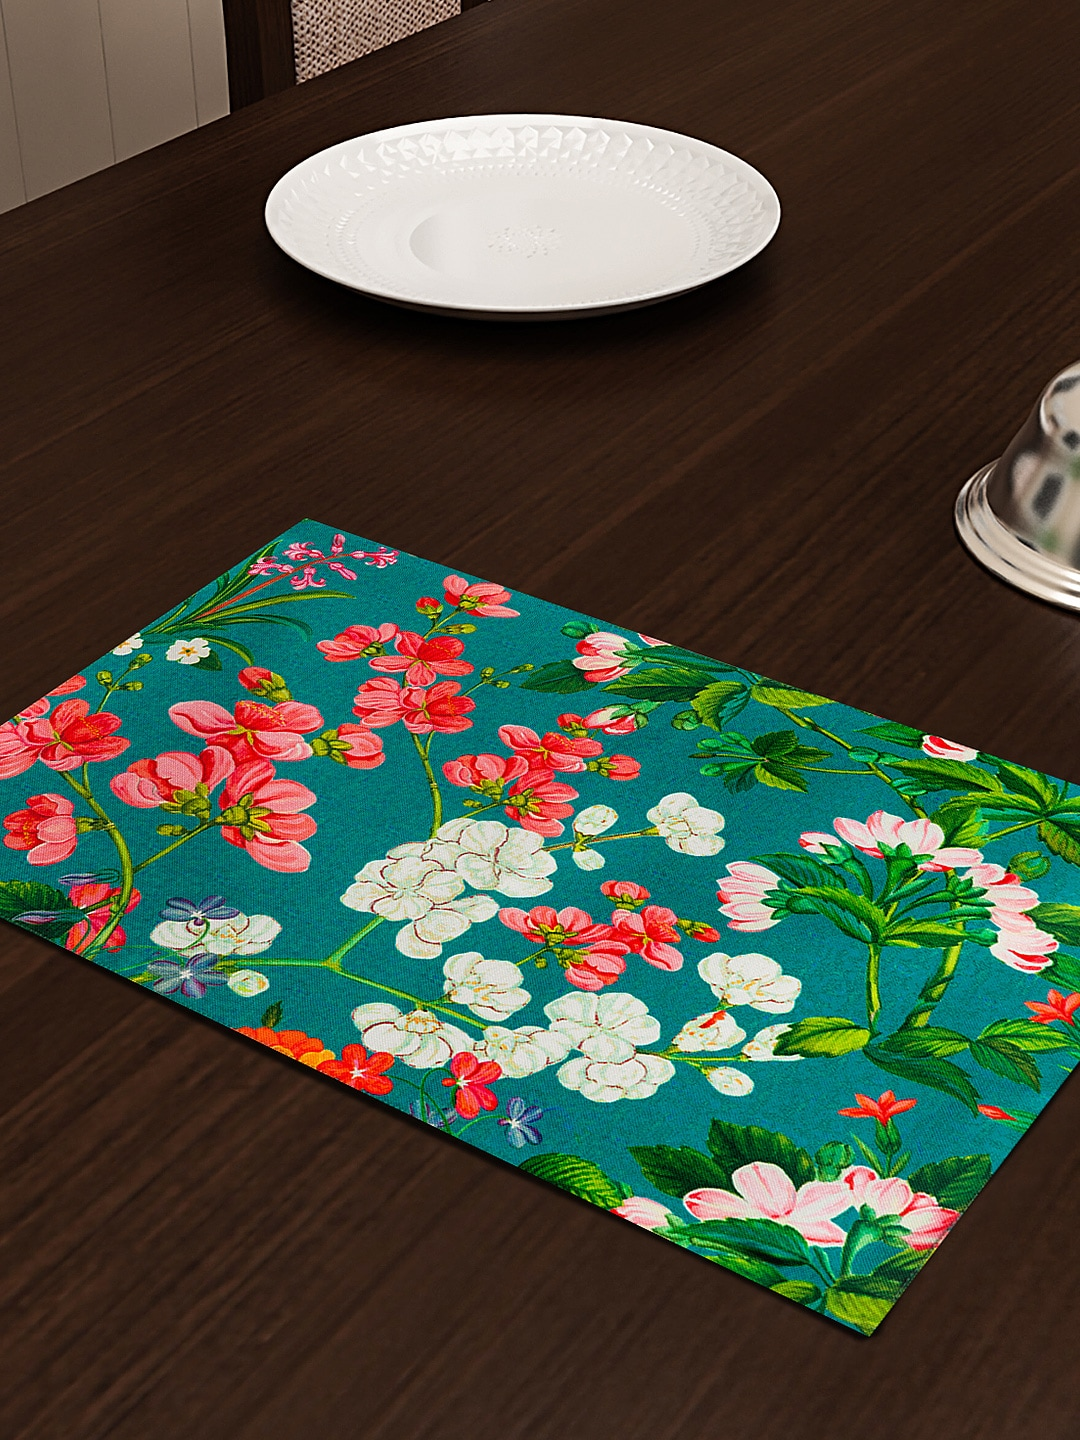 How to make dining table mats at home - How To Make Dining Table Mats At Home 40